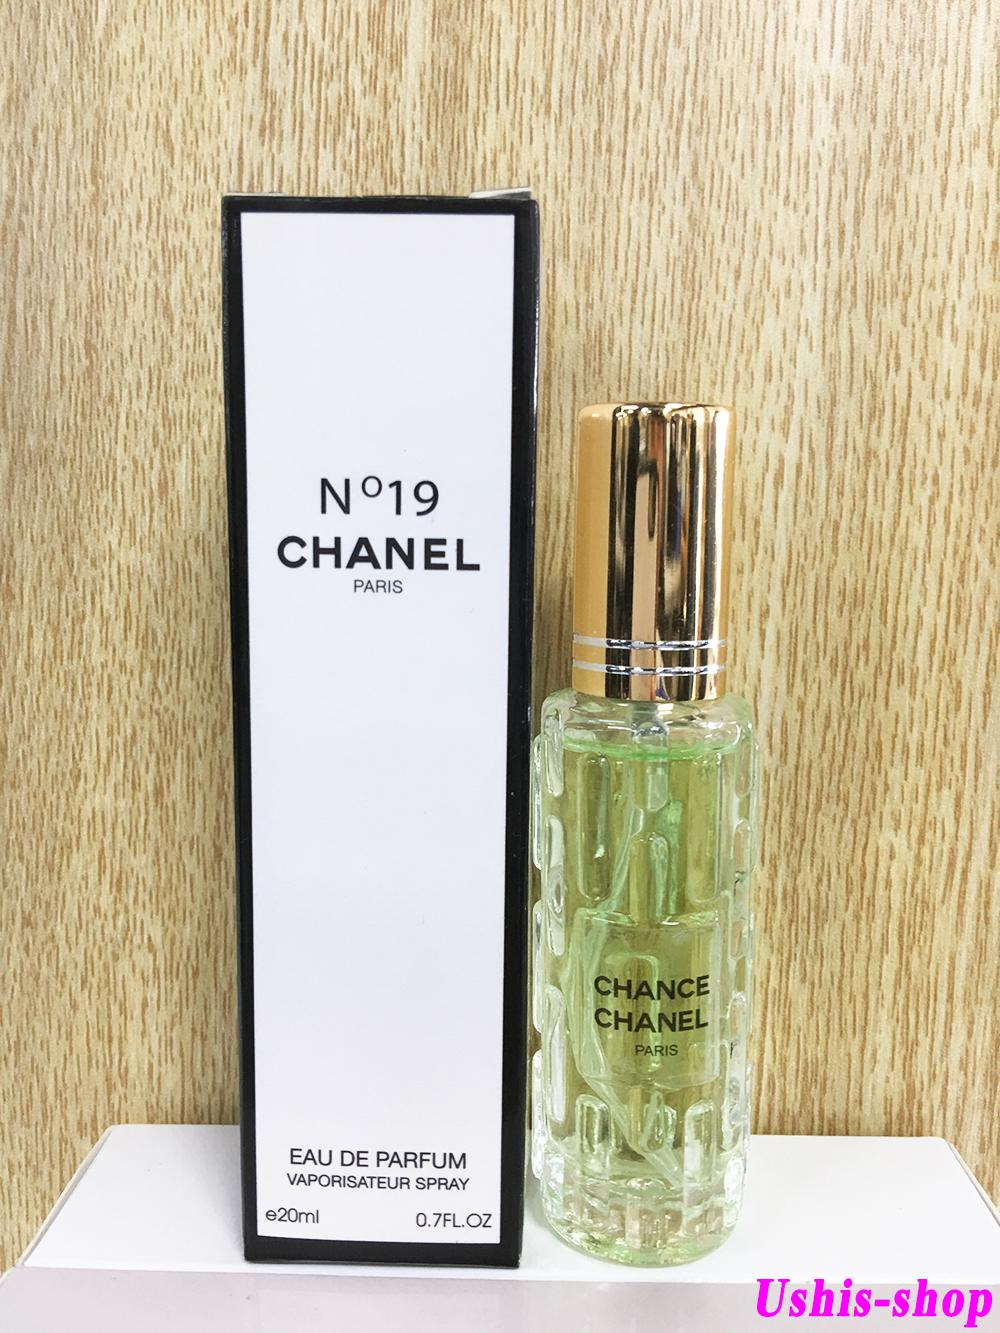 Nước hoa mini Chance Eau De Parfum (20ml) [Ushis-shop]